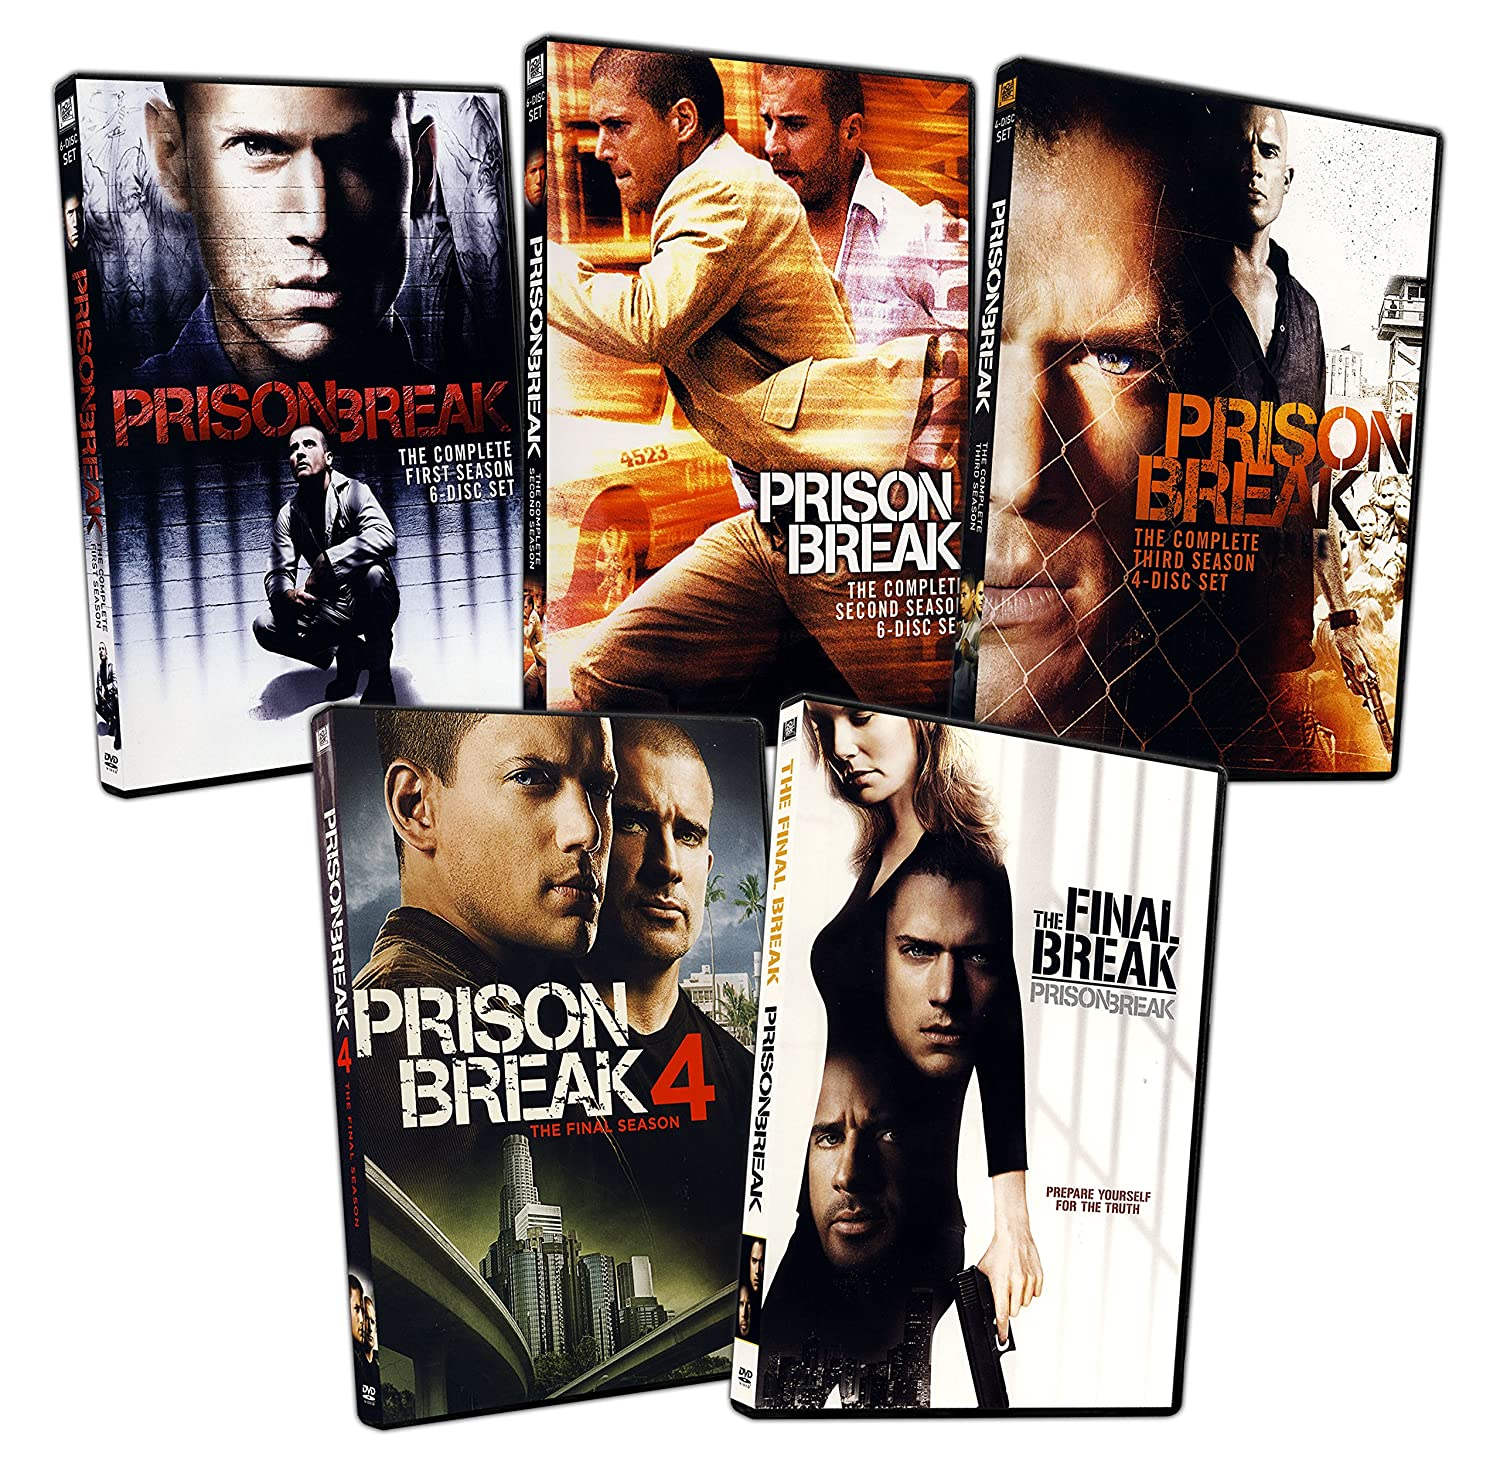 Amazoncom The Prison Break The Complete 1 4 Season